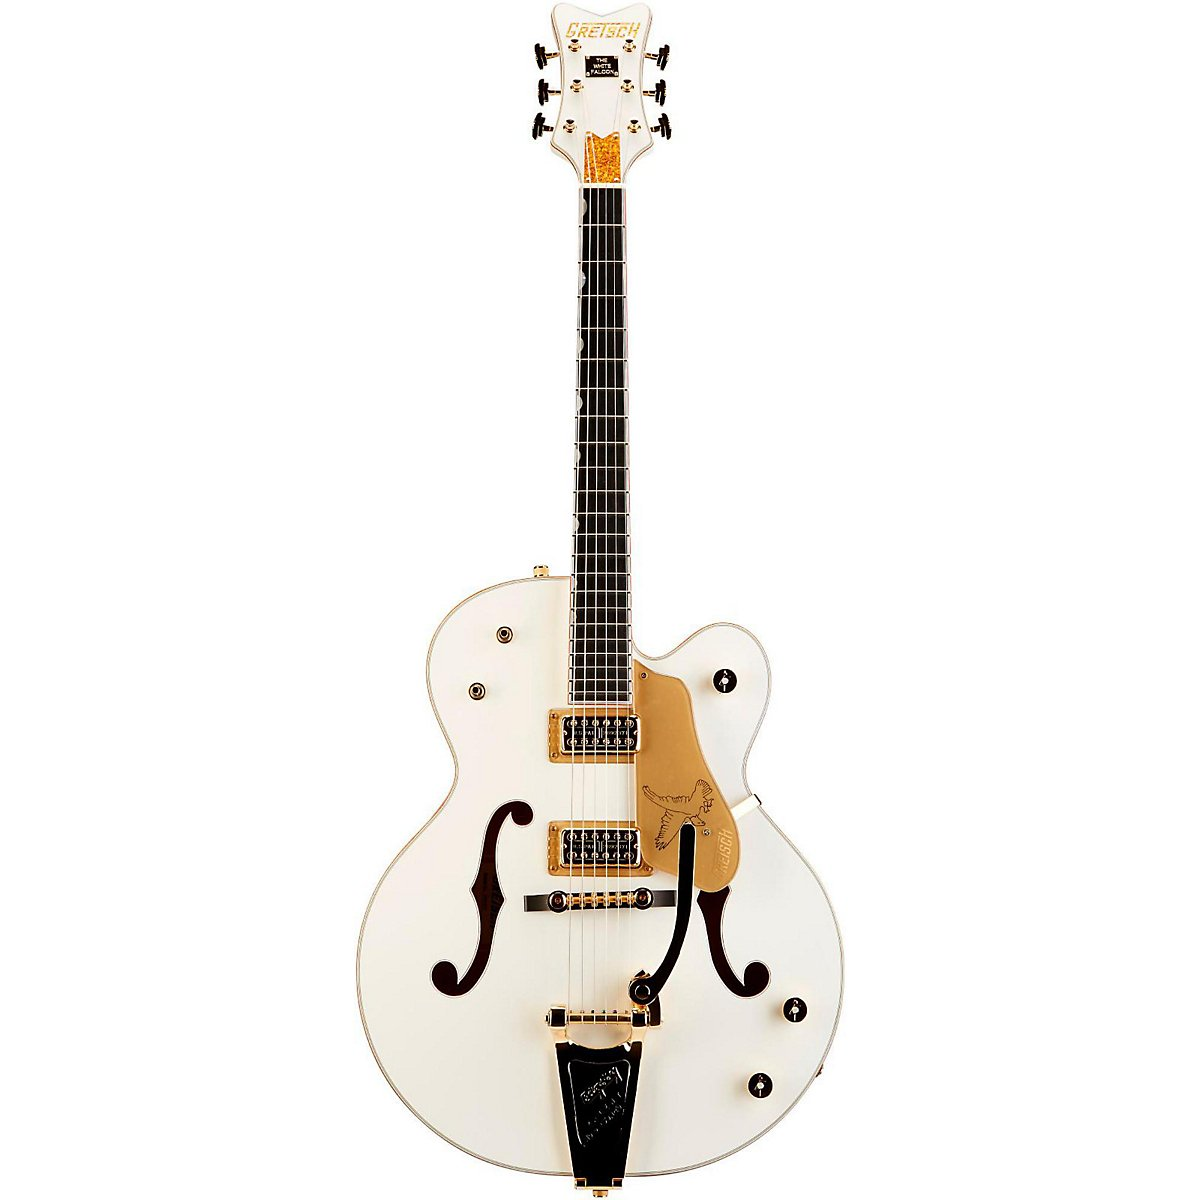 Gretsch グレッチ Guitars G6136T White Falcon with Bigsby White エレキギター エレクトリックギター (並行輸入) B0035GV9CO